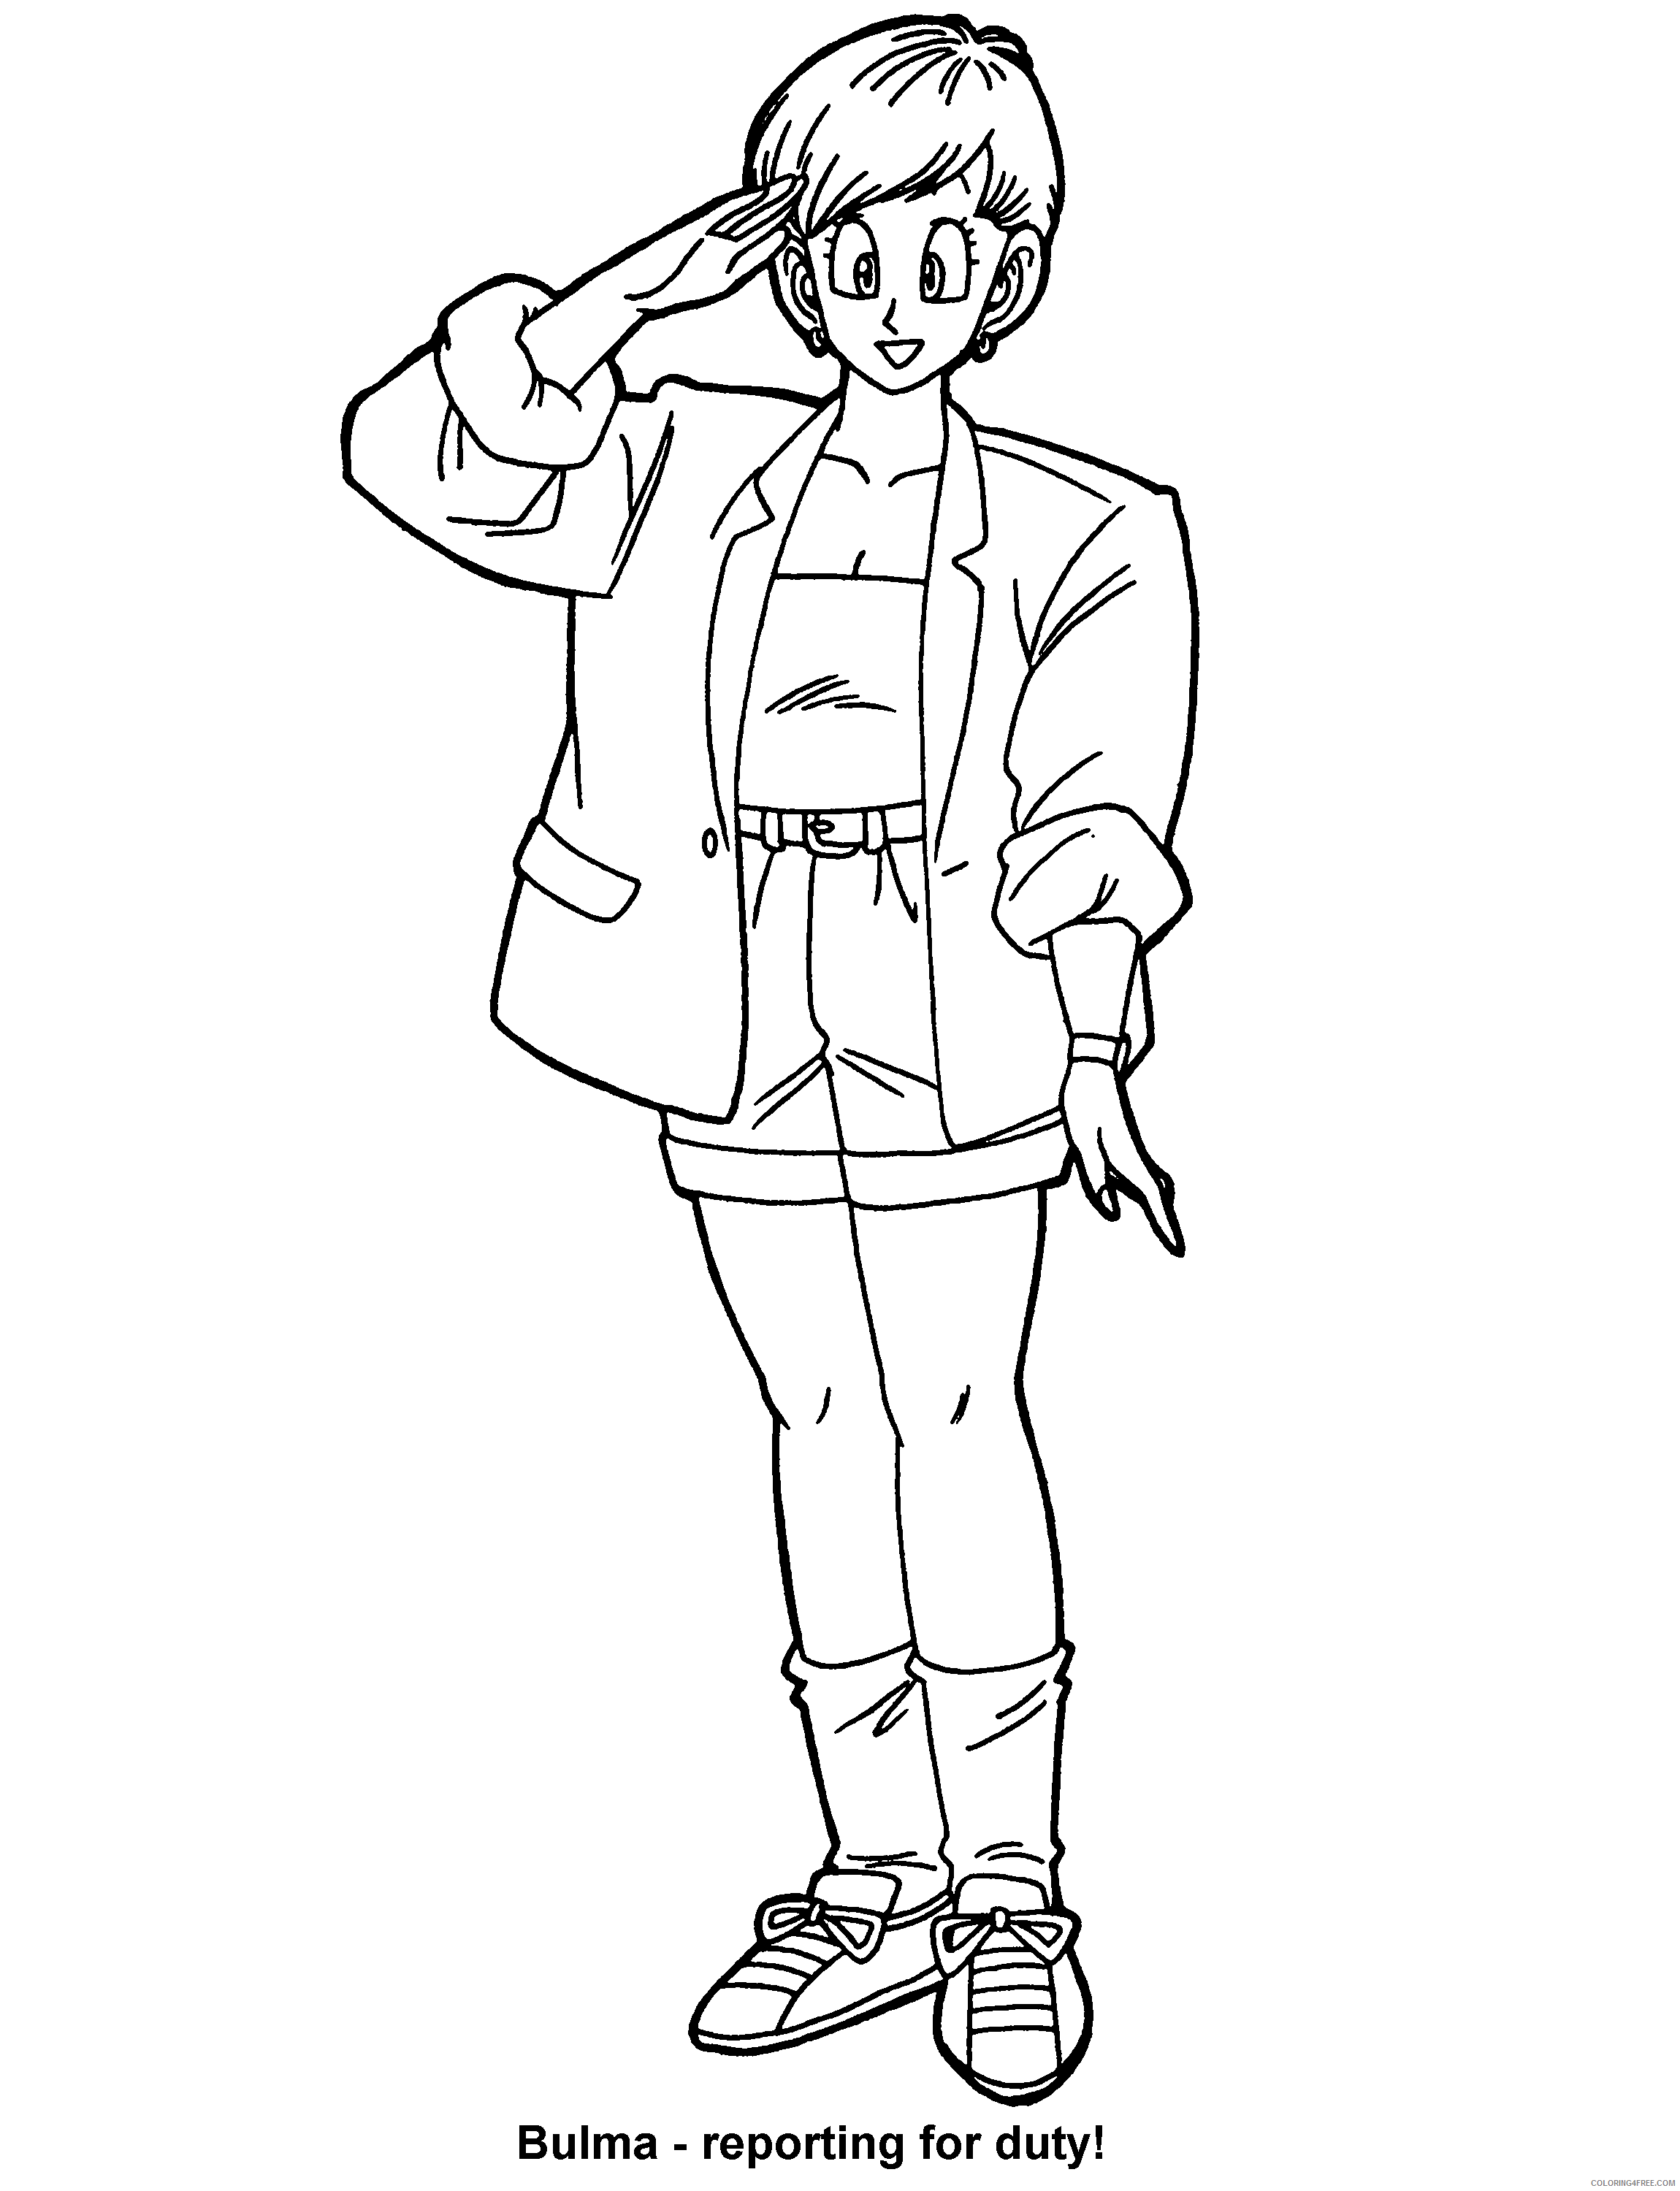 020 dragon ball z bulma reporting for duty Printable Coloring4free